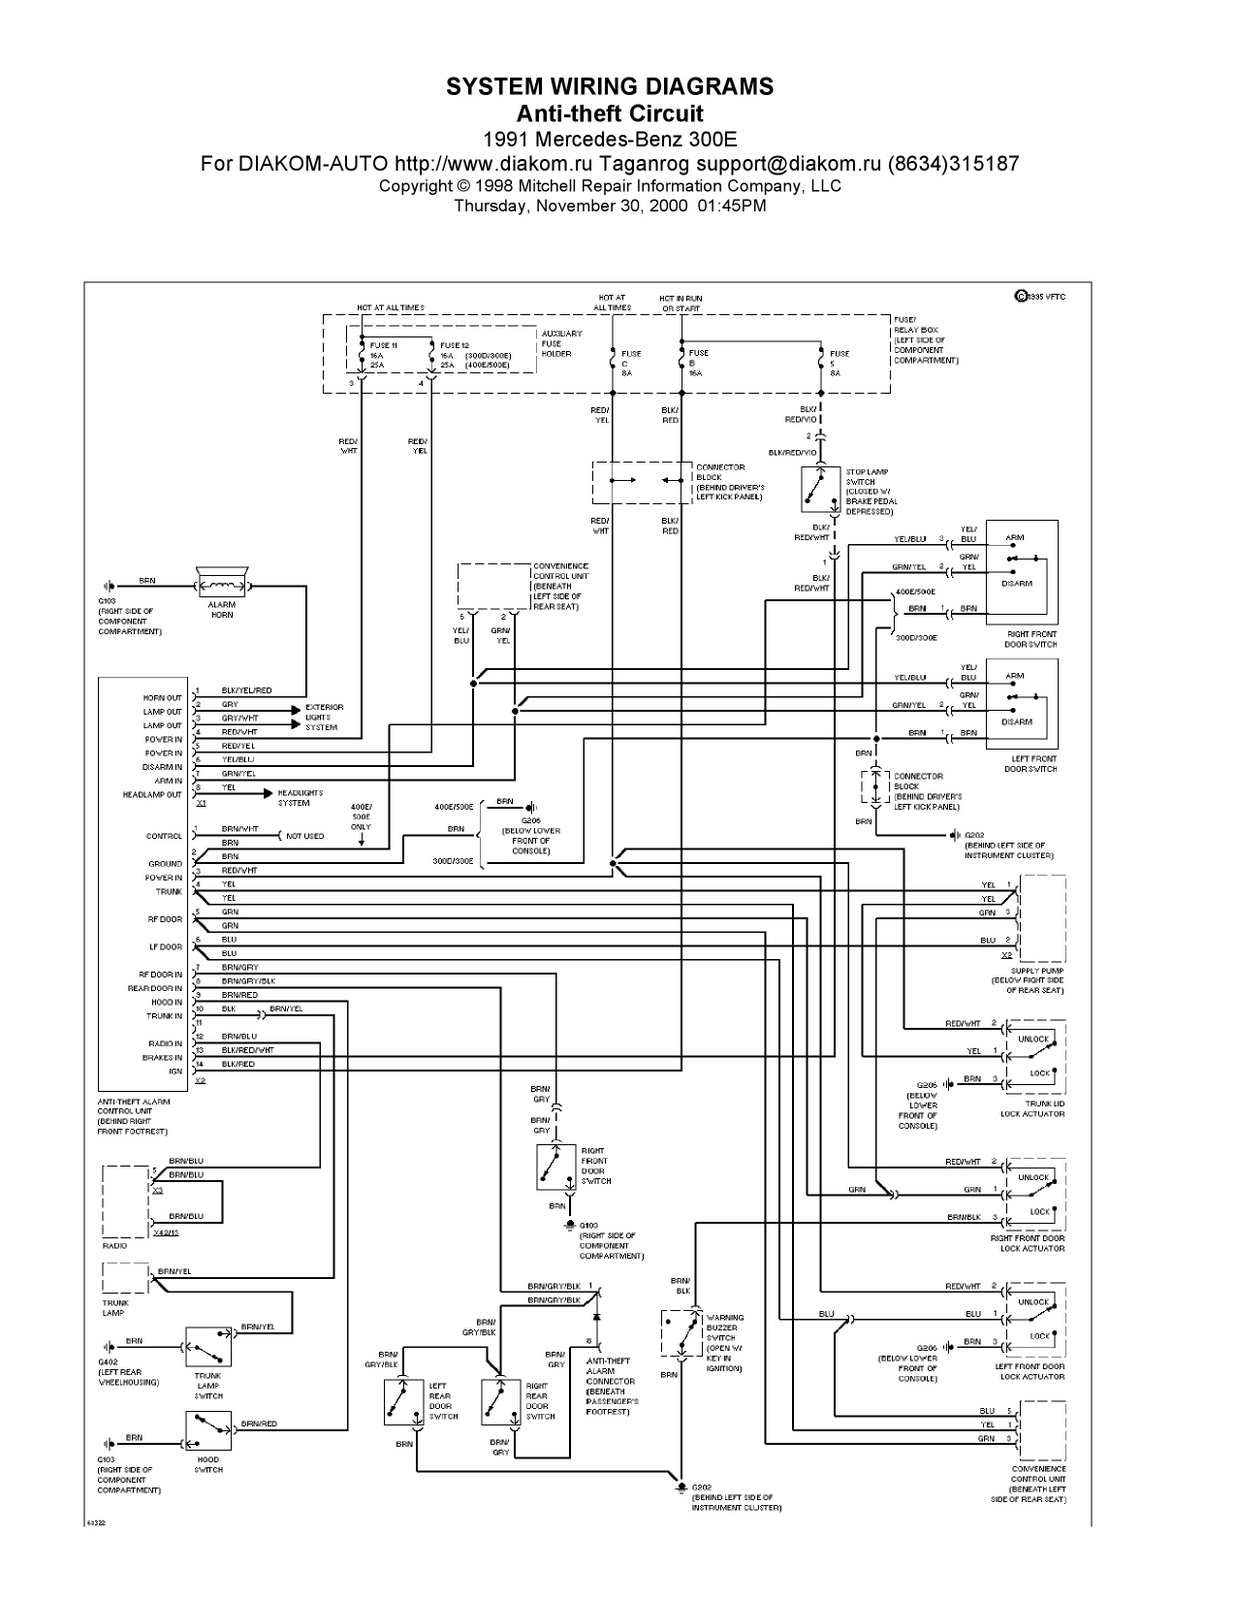 Groovy Benz 300E Wiring Diagram On Pioneer Car Stereo Wiring Diagram Wiring 101 Mecadwellnesstrialsorg